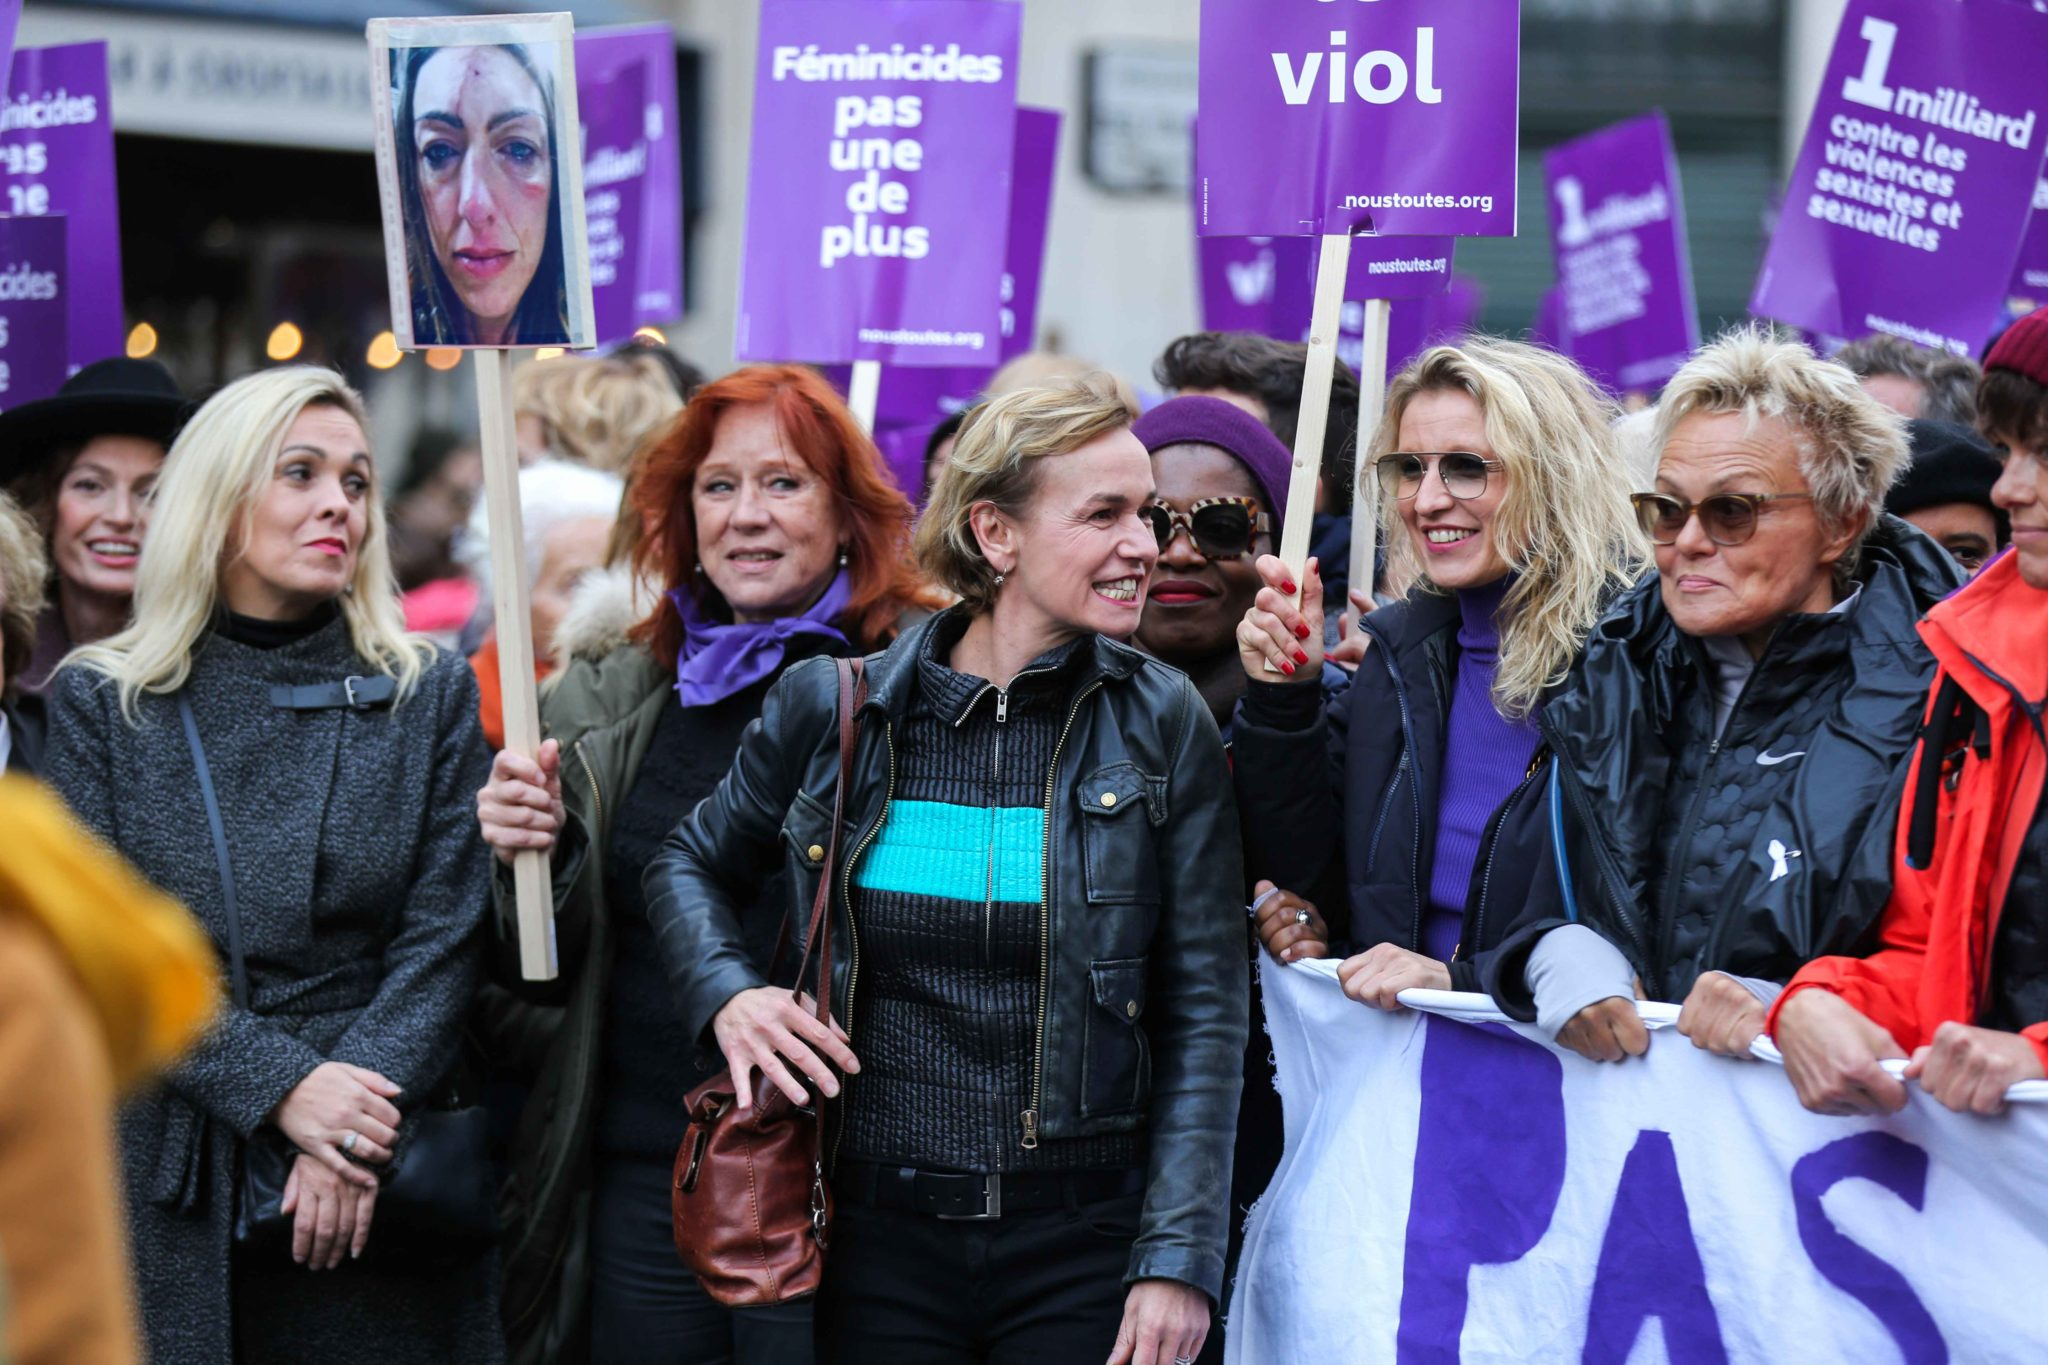 French actresses Sandrine Bonnaire  (3R) and Alexandra Lamy (2R) and French humorist and activist Muriel Robin (1R) take part in a protest to condemn violence against women, on November 23, 2019, in Paris. Wearing purple – the adopted colour of feminist